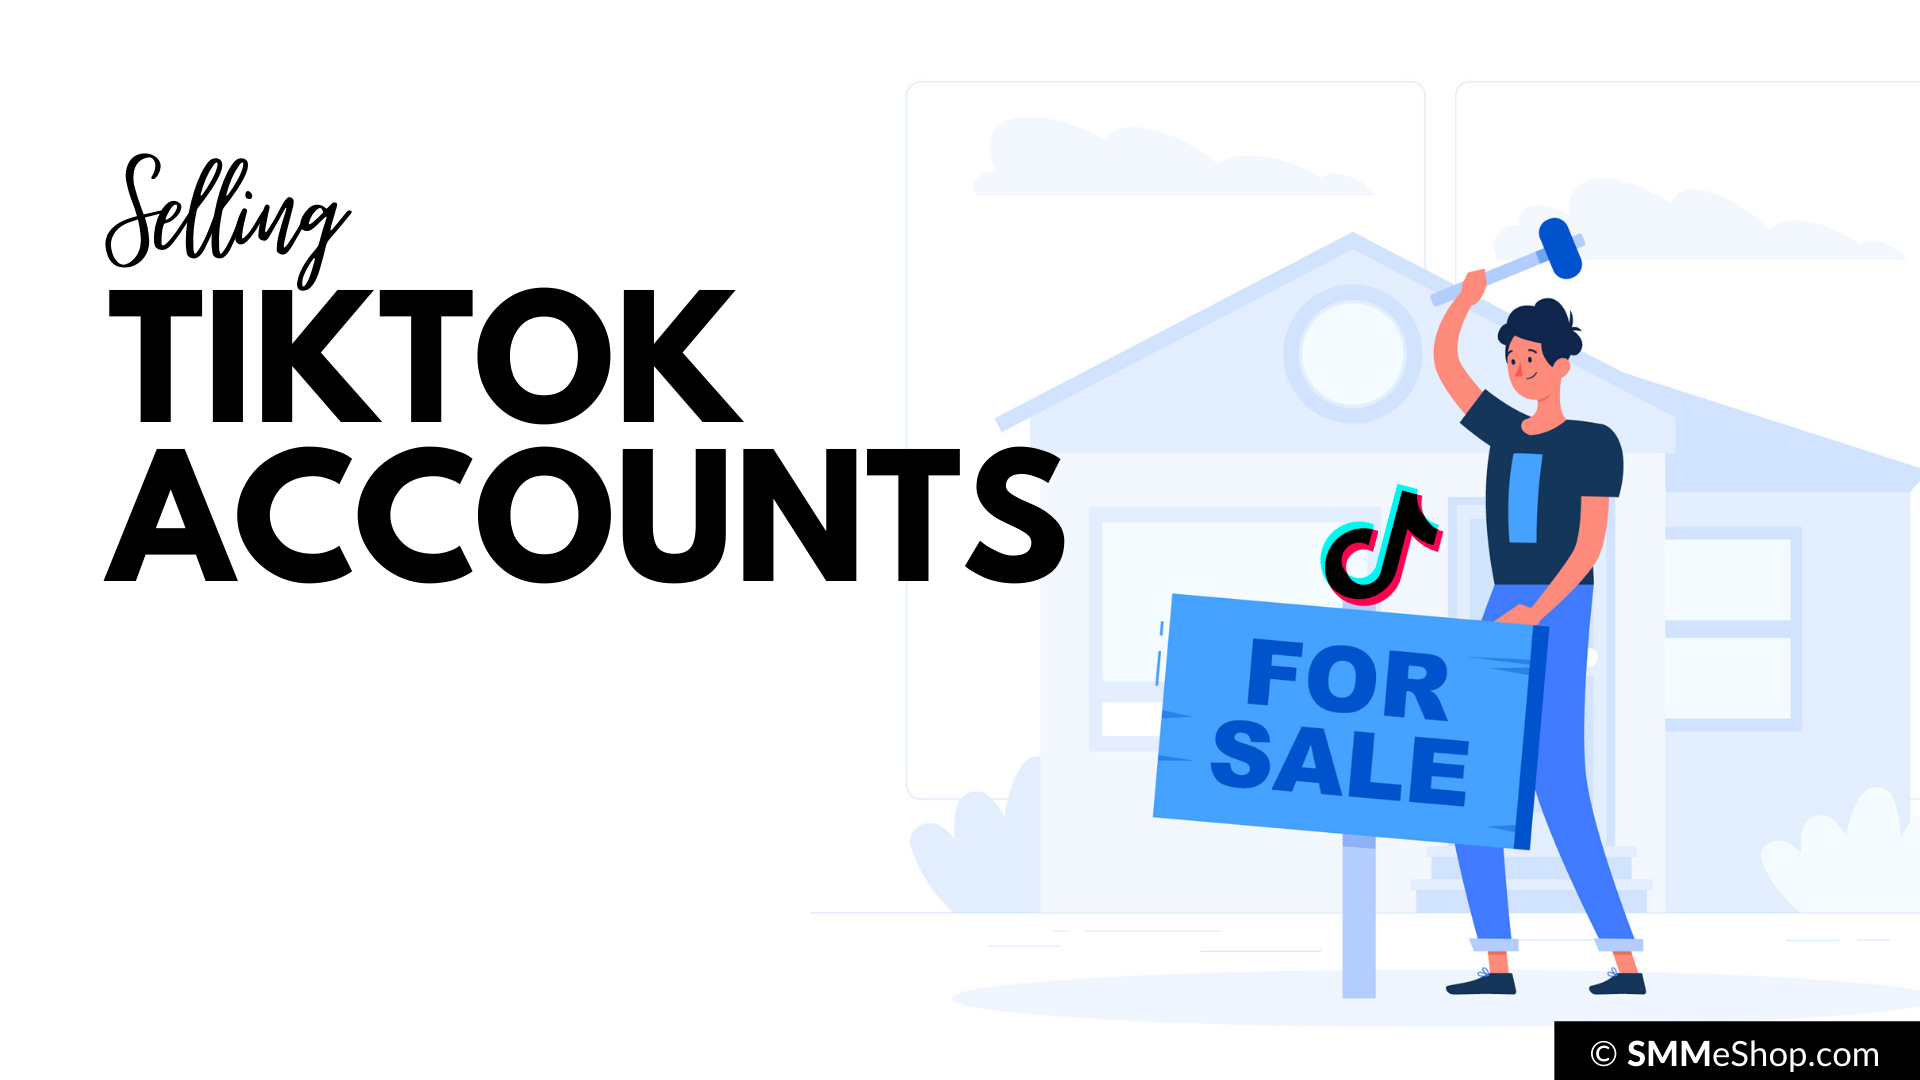 You can make money from TikTok by Growing Accounts and then Selling Them.